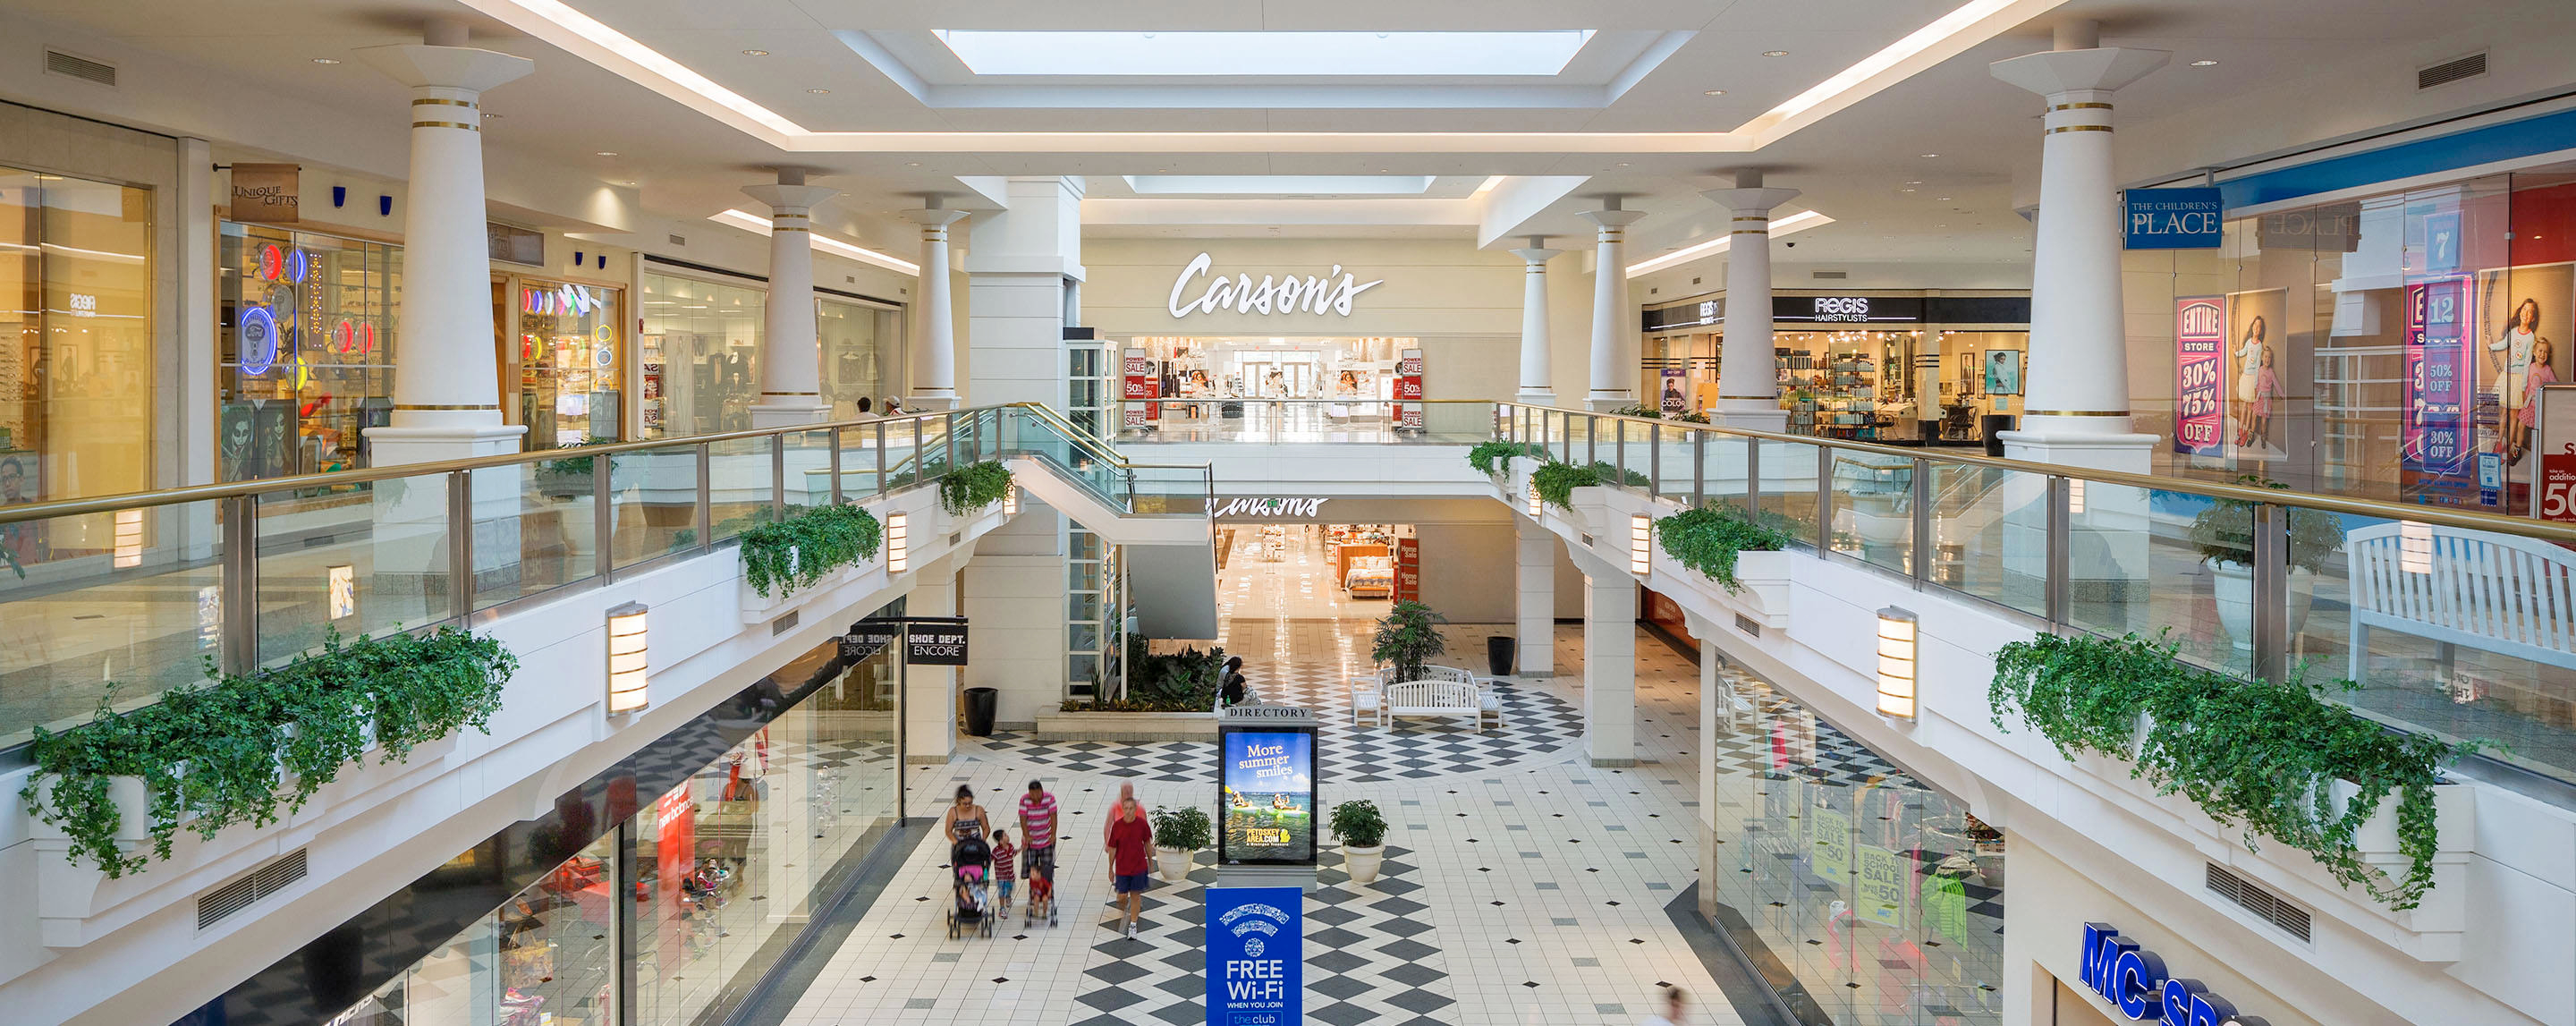 Fort Wayne Mall >> Glenbrook Square 4201 Coldwater Rd Fort Wayne In Shopping Centers